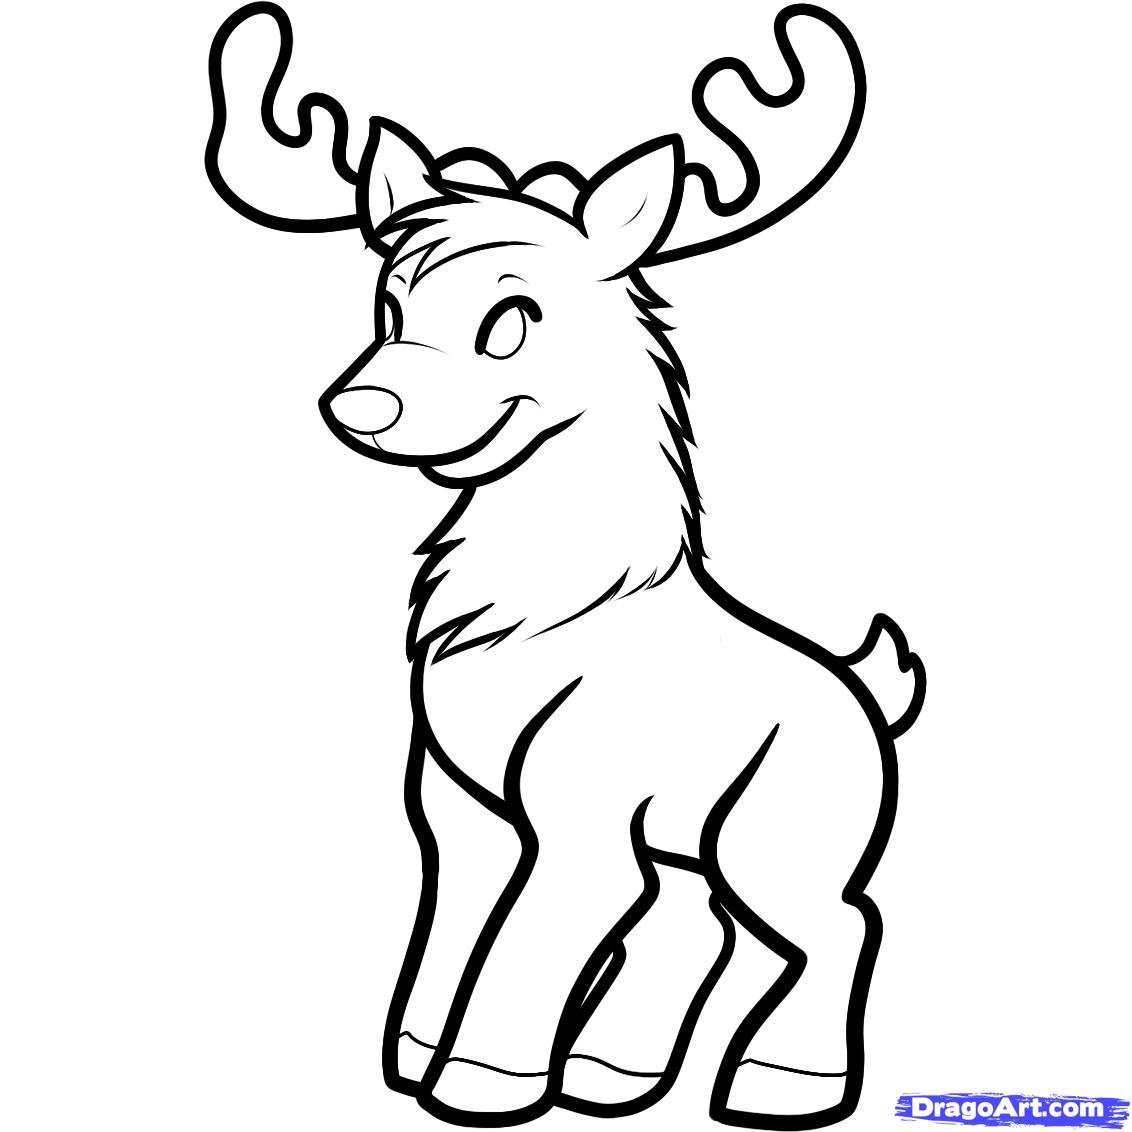 1132x1132 Pics Of Reindeer Drawing How To Draw Rudolph The Red Nosed